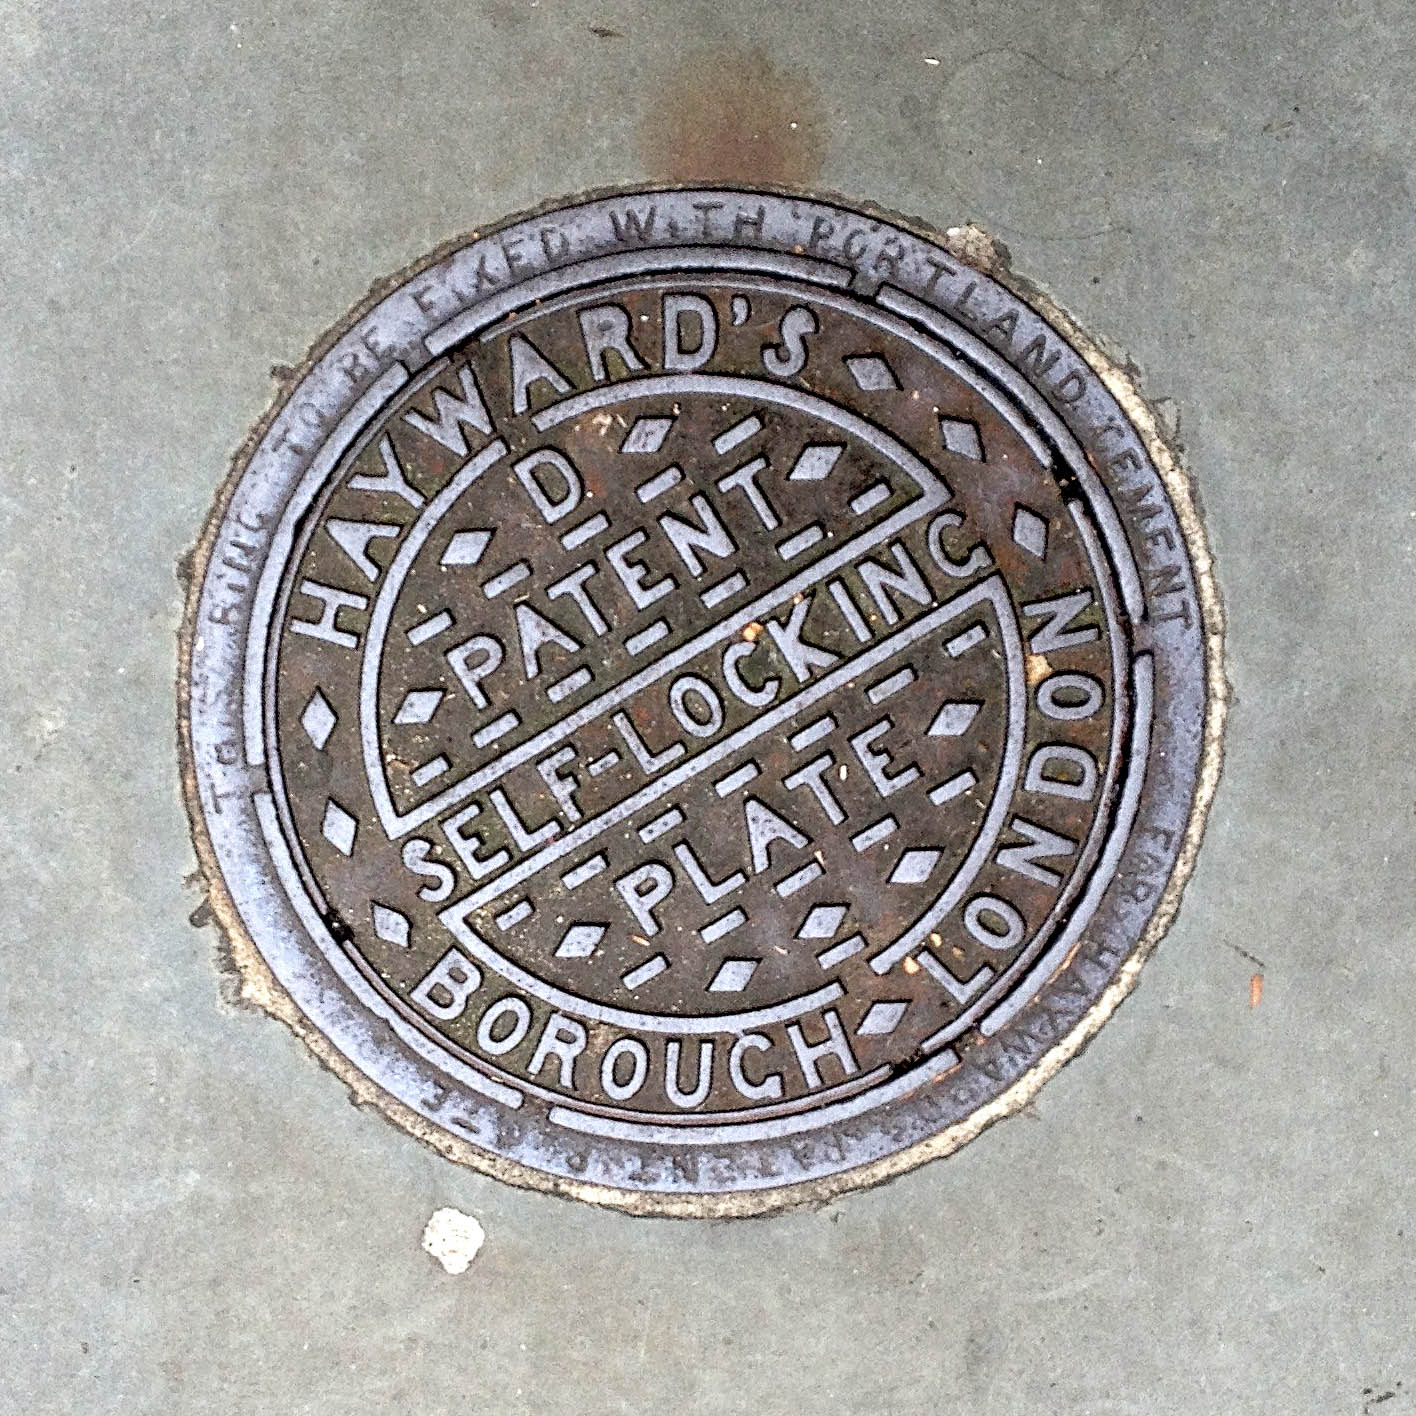 Manhole Cover, London - Cast iron, inscribed with Hayward's Borough London, D Patent Self Locking Plate